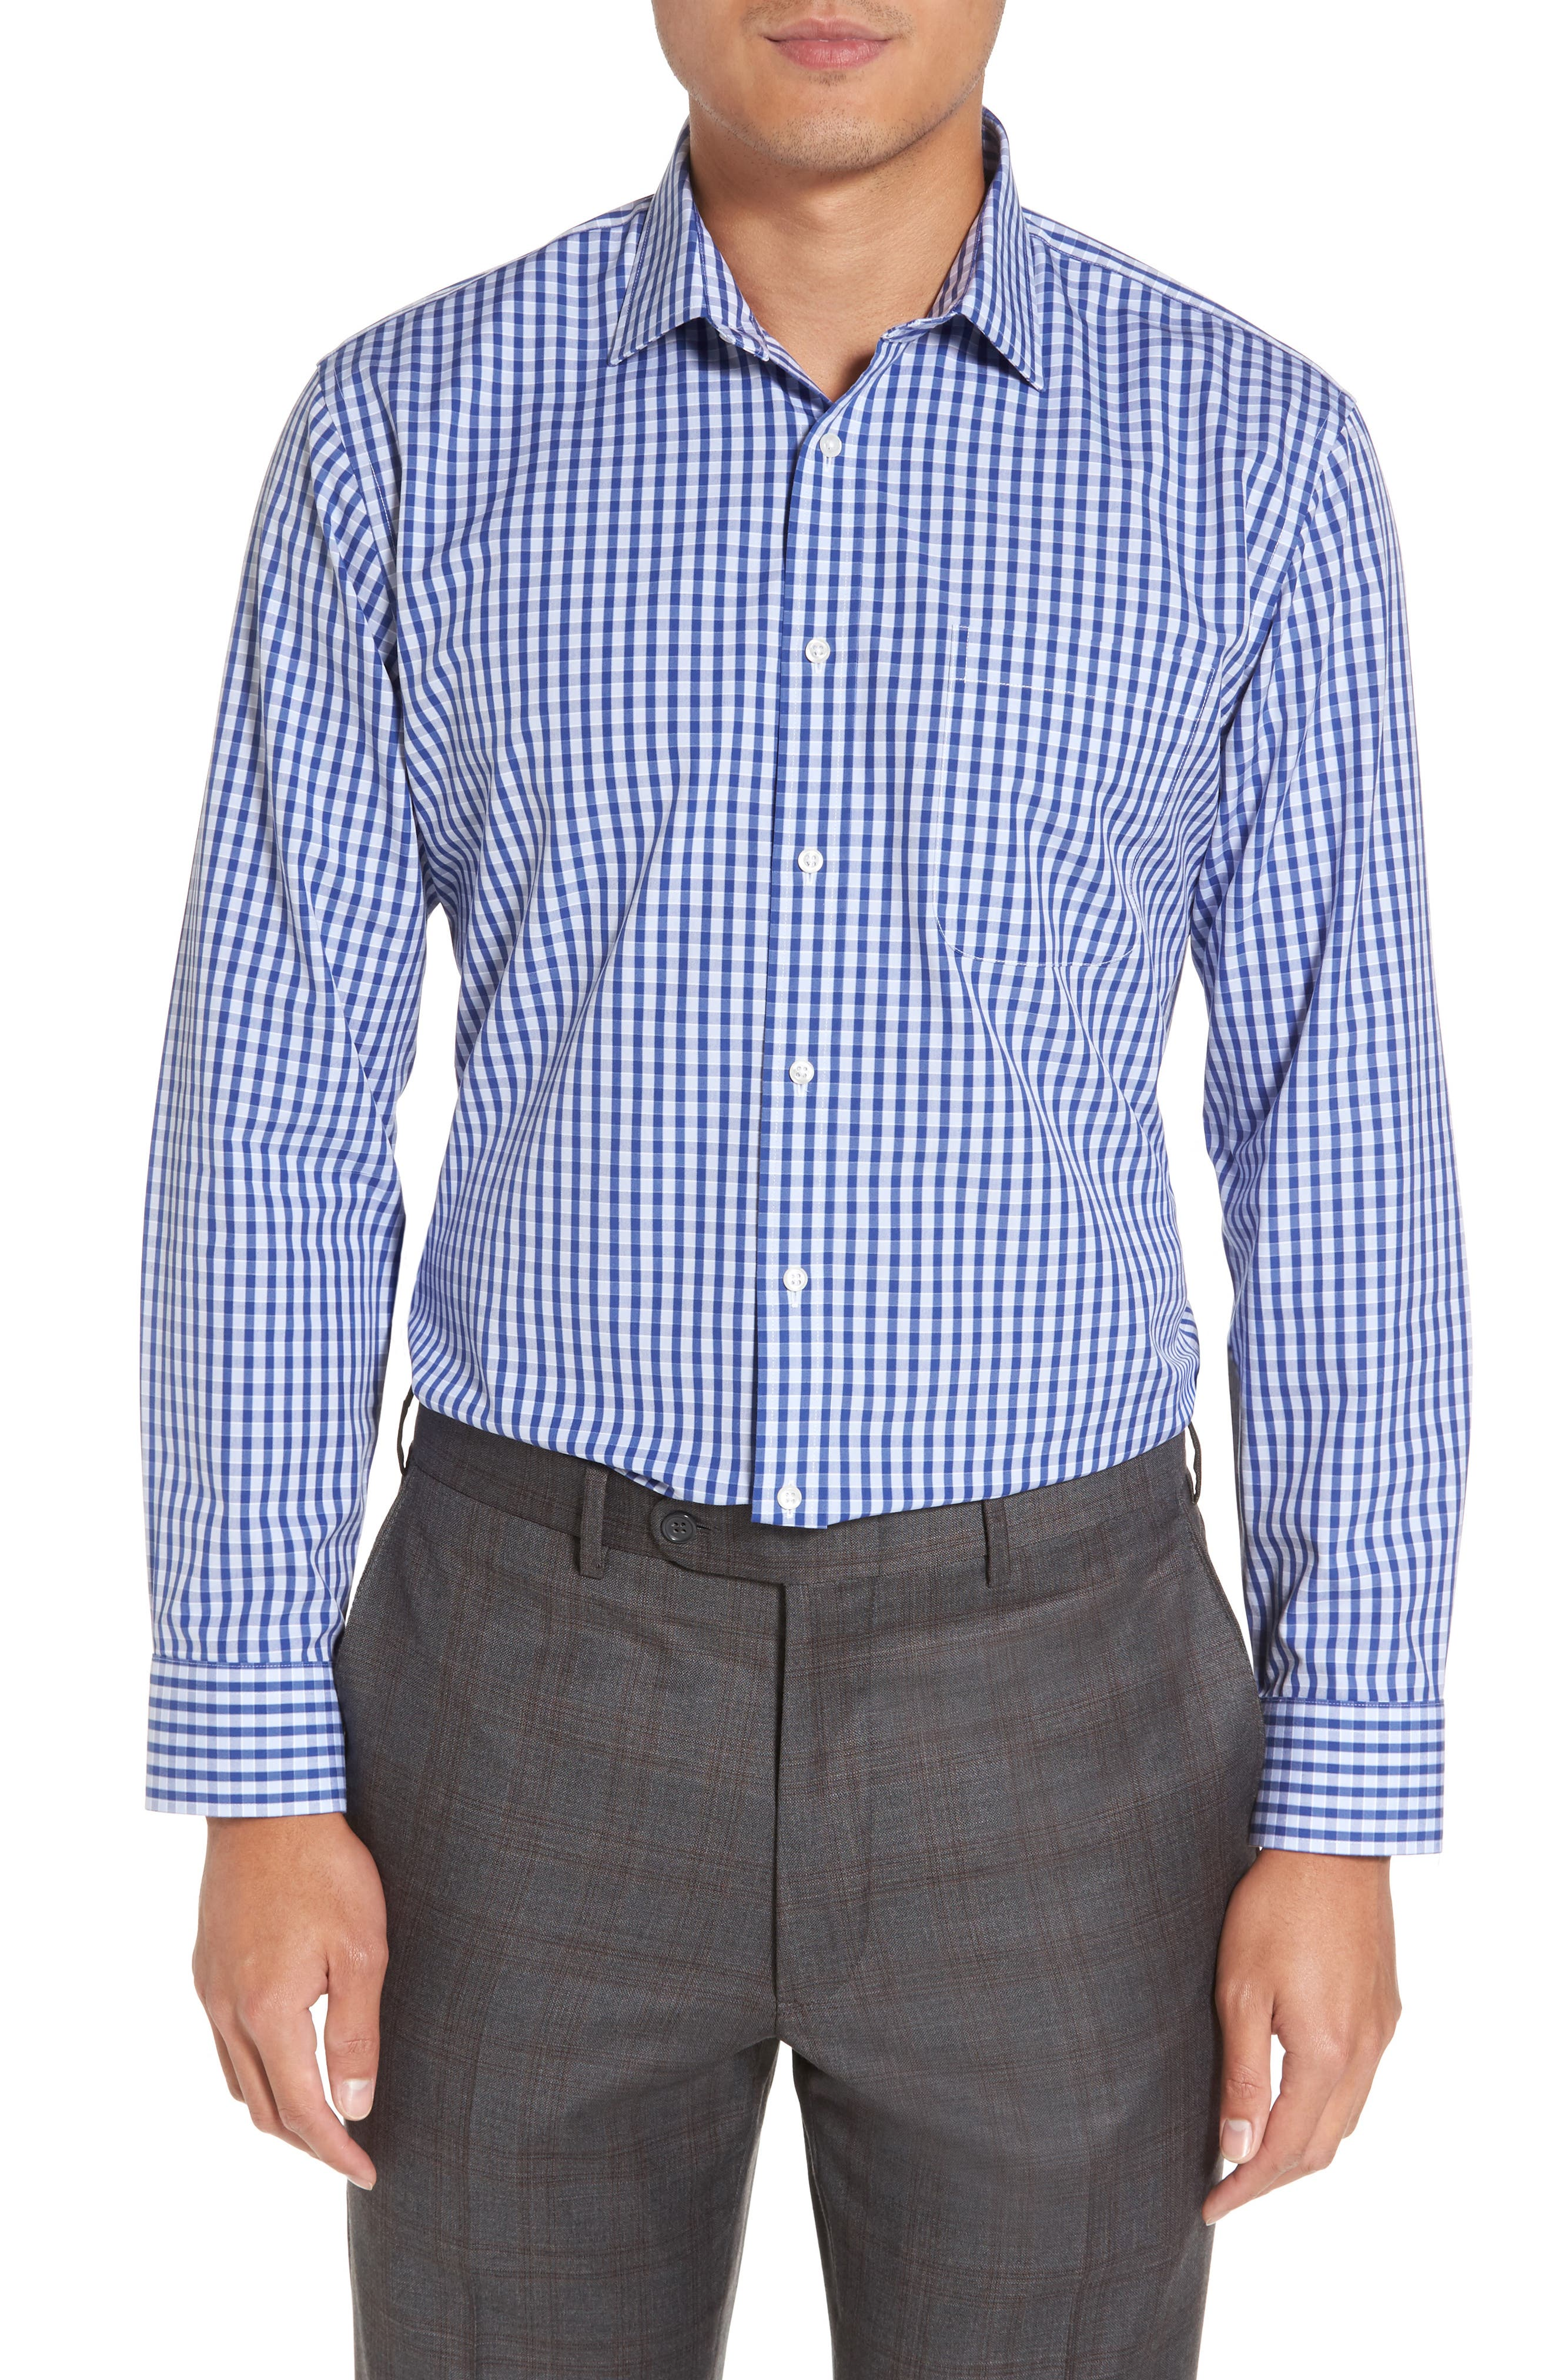 Smartcare<sup>™</sup> Trim Fit Check Dress Shirt,                             Alternate thumbnail 2, color,                             Blue Marine